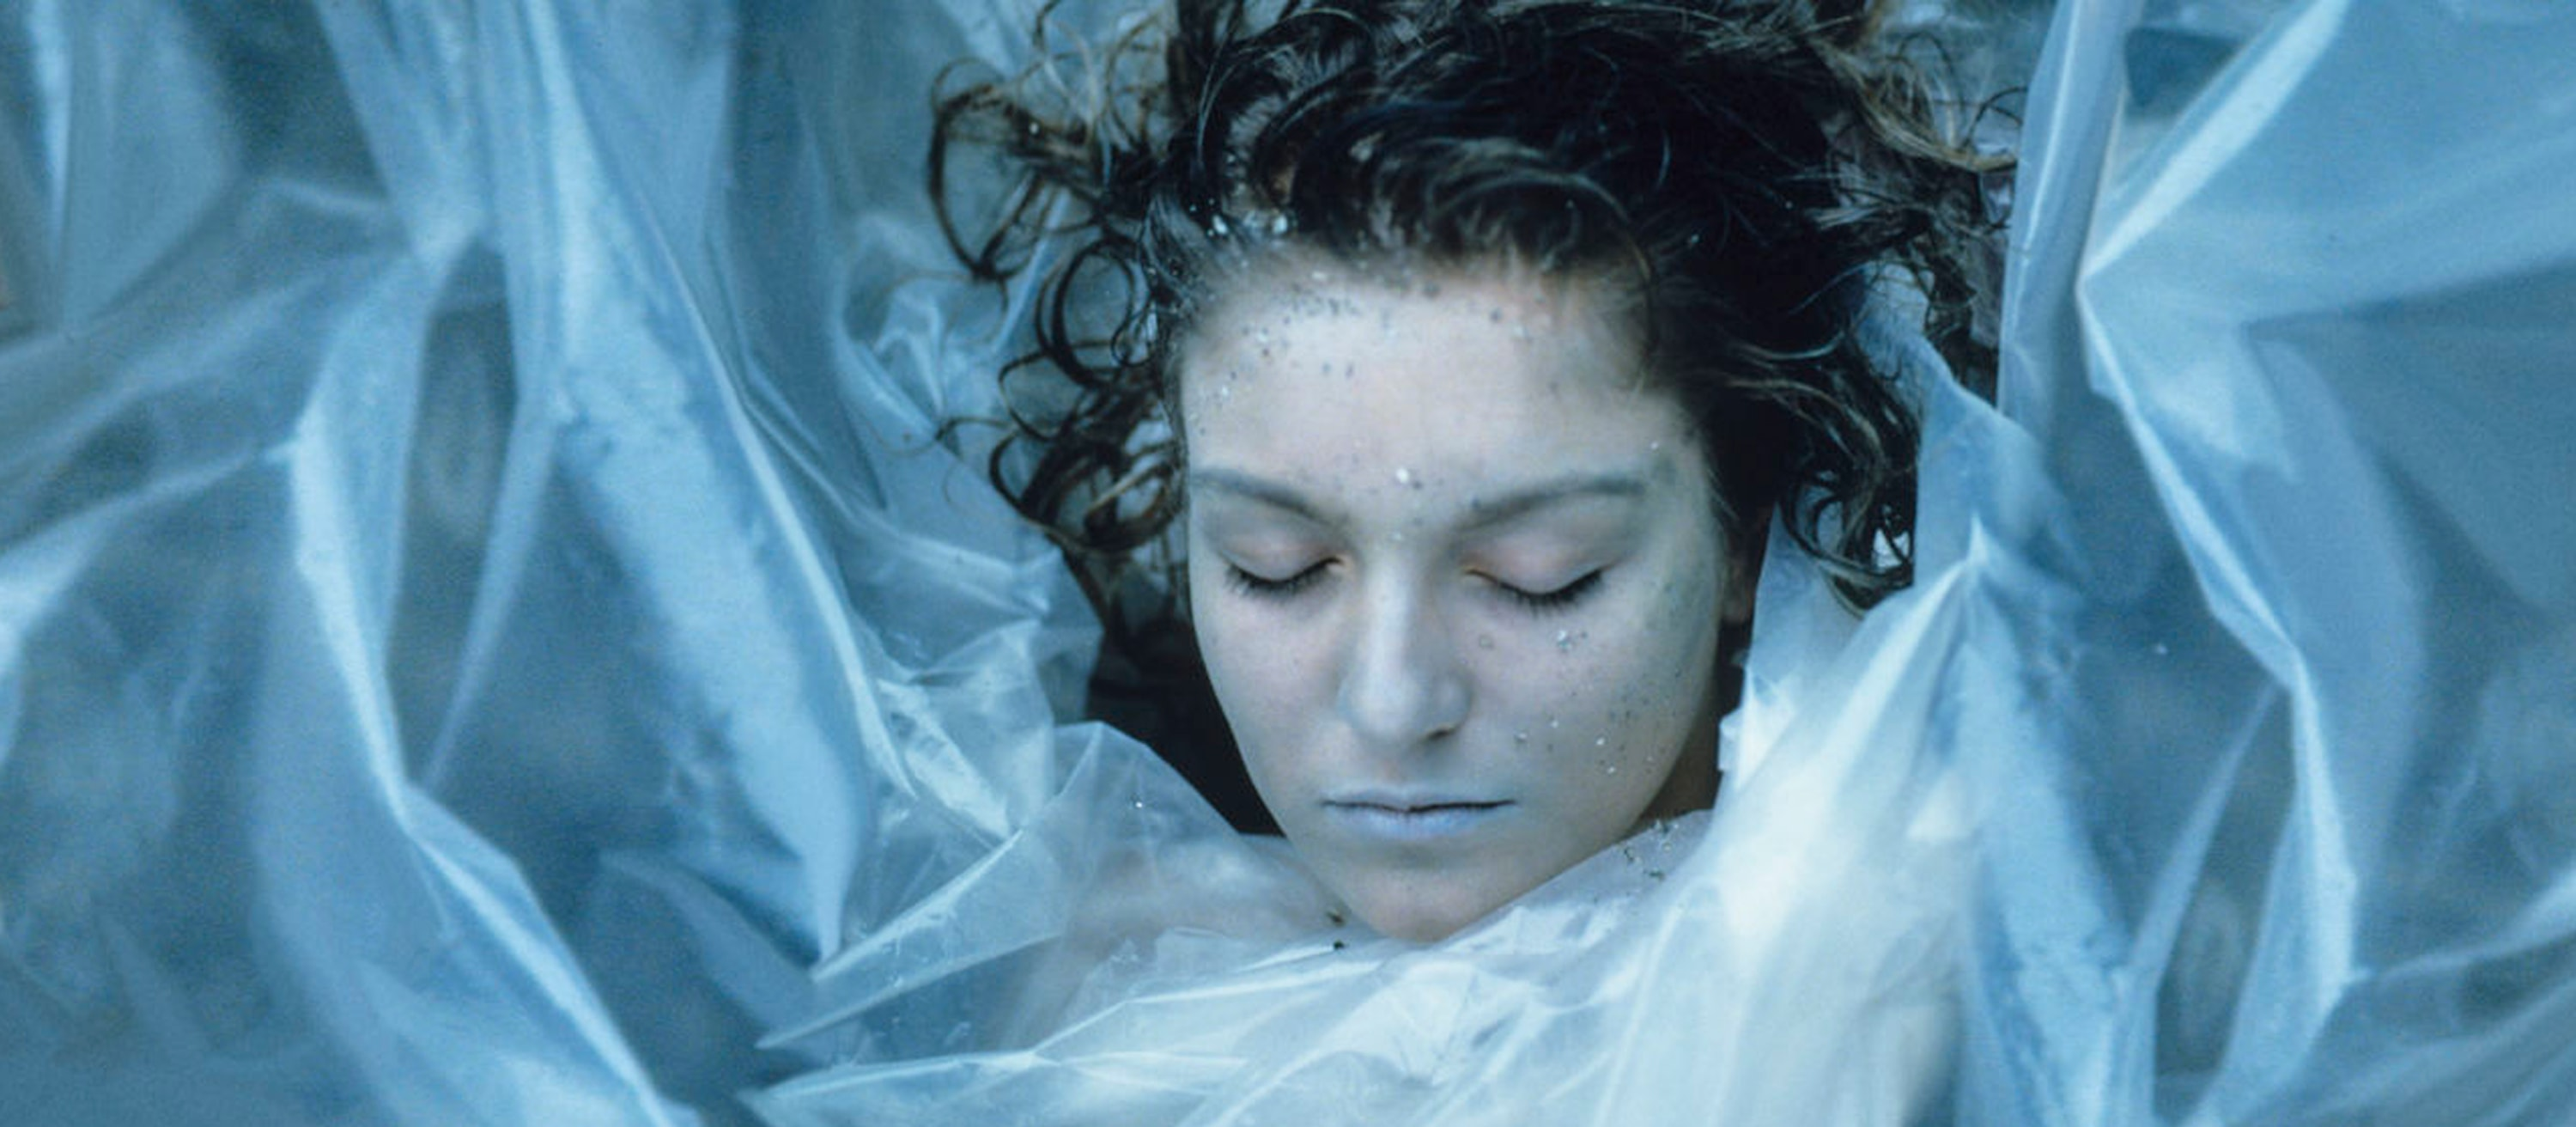 Twin Peaks Halloween costume Laura Palmer dead wrapped in plastic